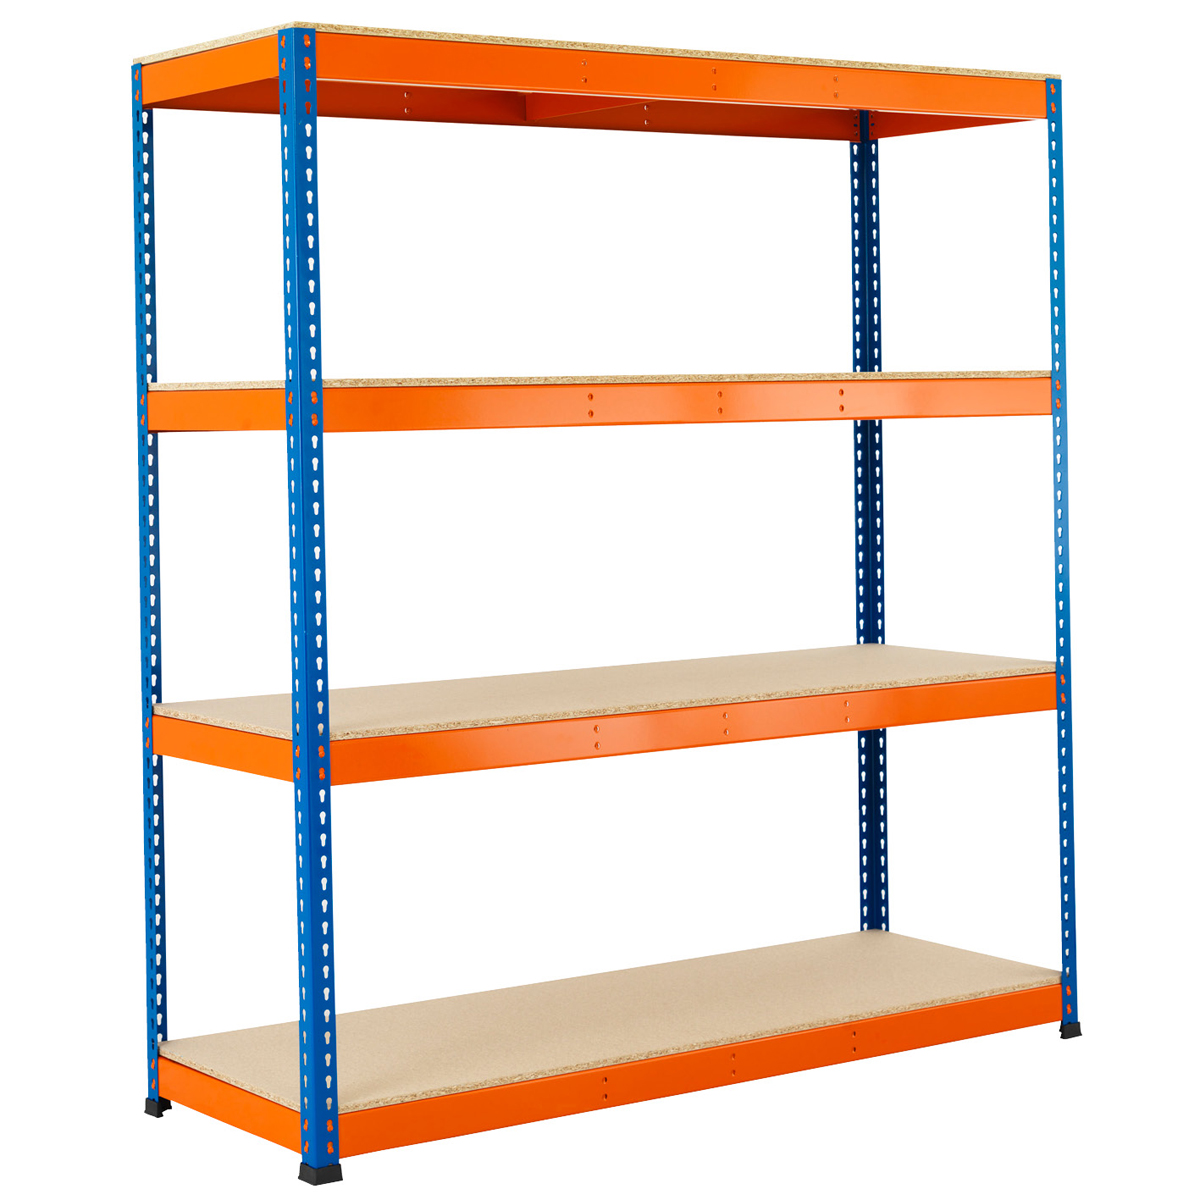 Classic Warehouse Racking 1980h with 4 levels - 400kg UDL